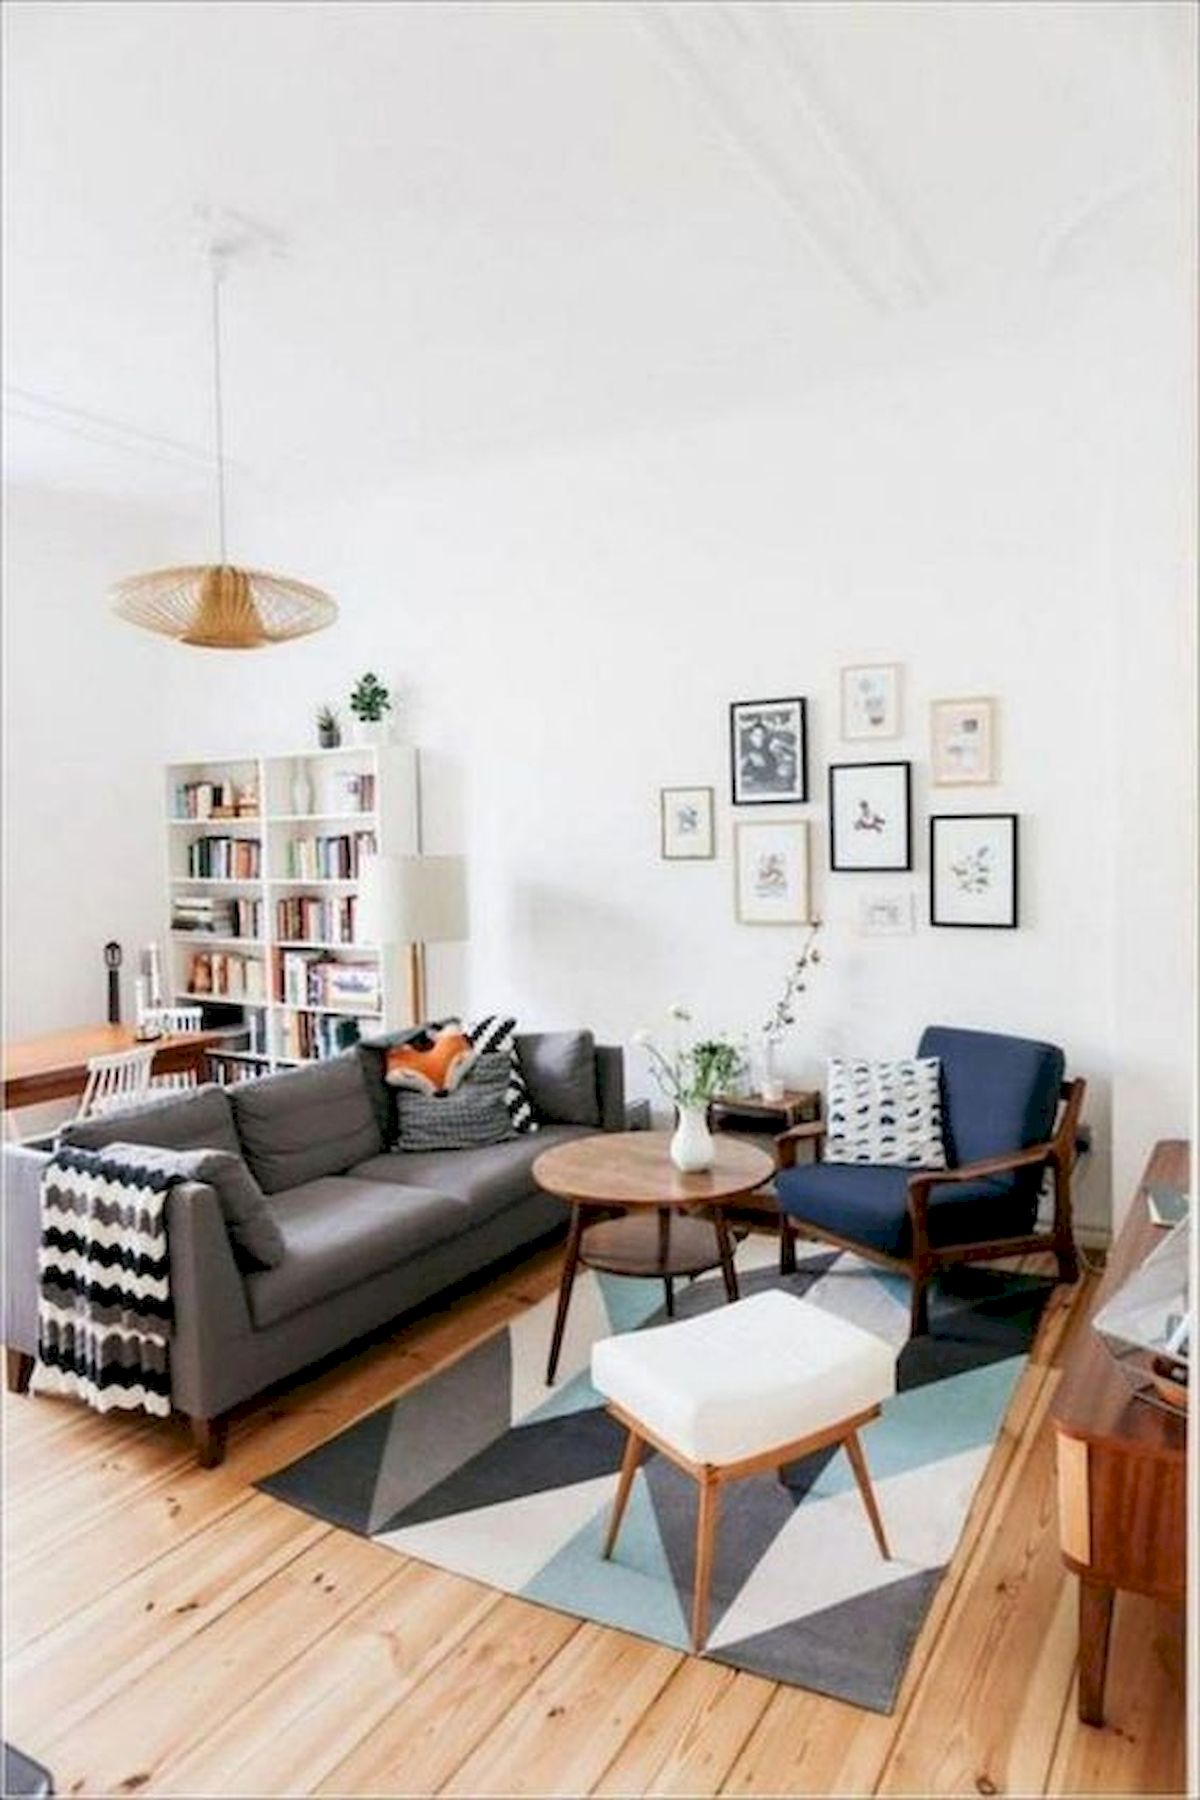 30 Awesome Small Apartment Design and Decor Ideas With Farmhouse Styles (23)